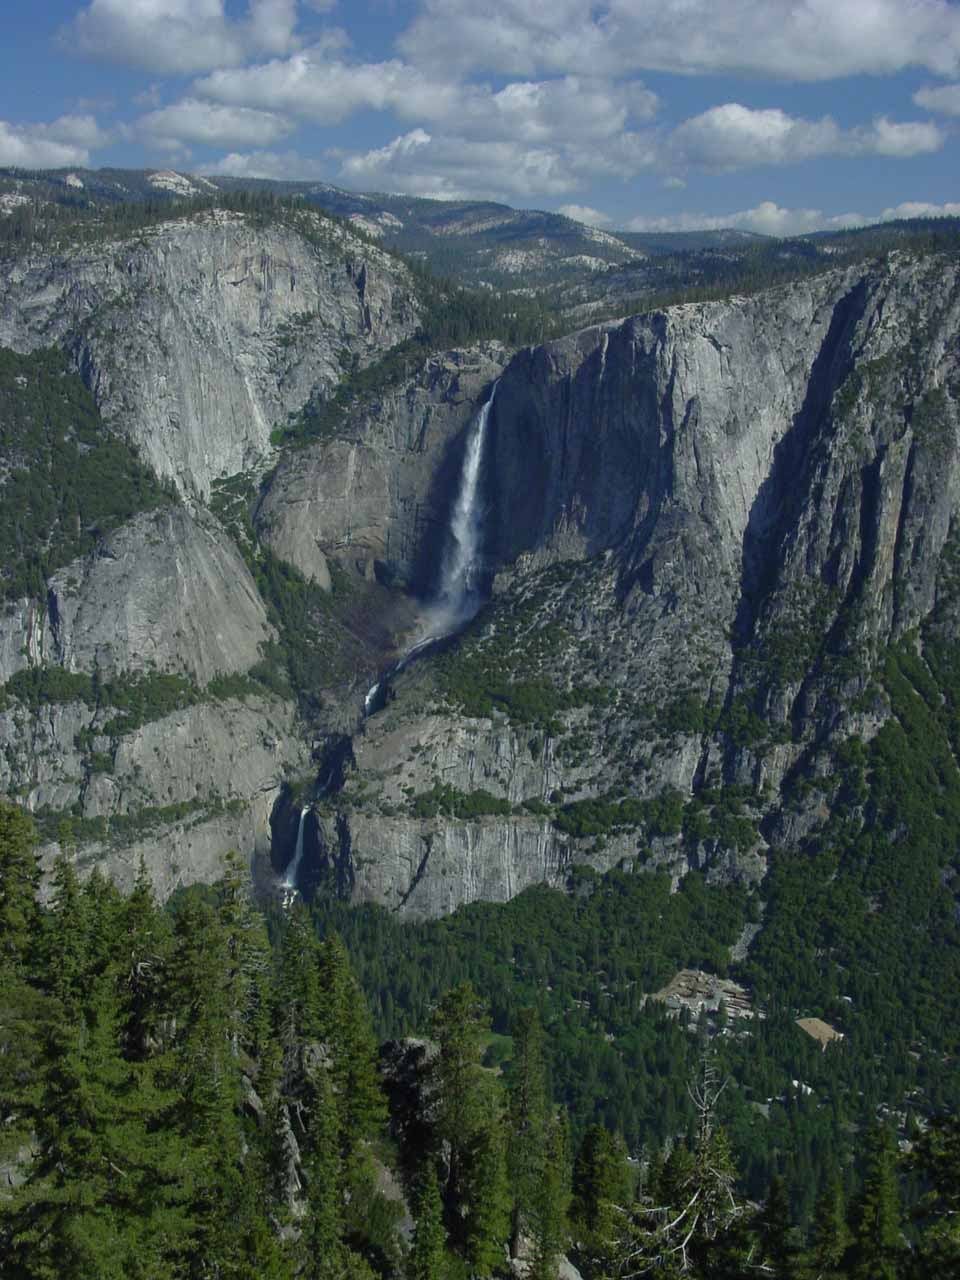 Yosemite Falls viewed from the Four-Mile Trail